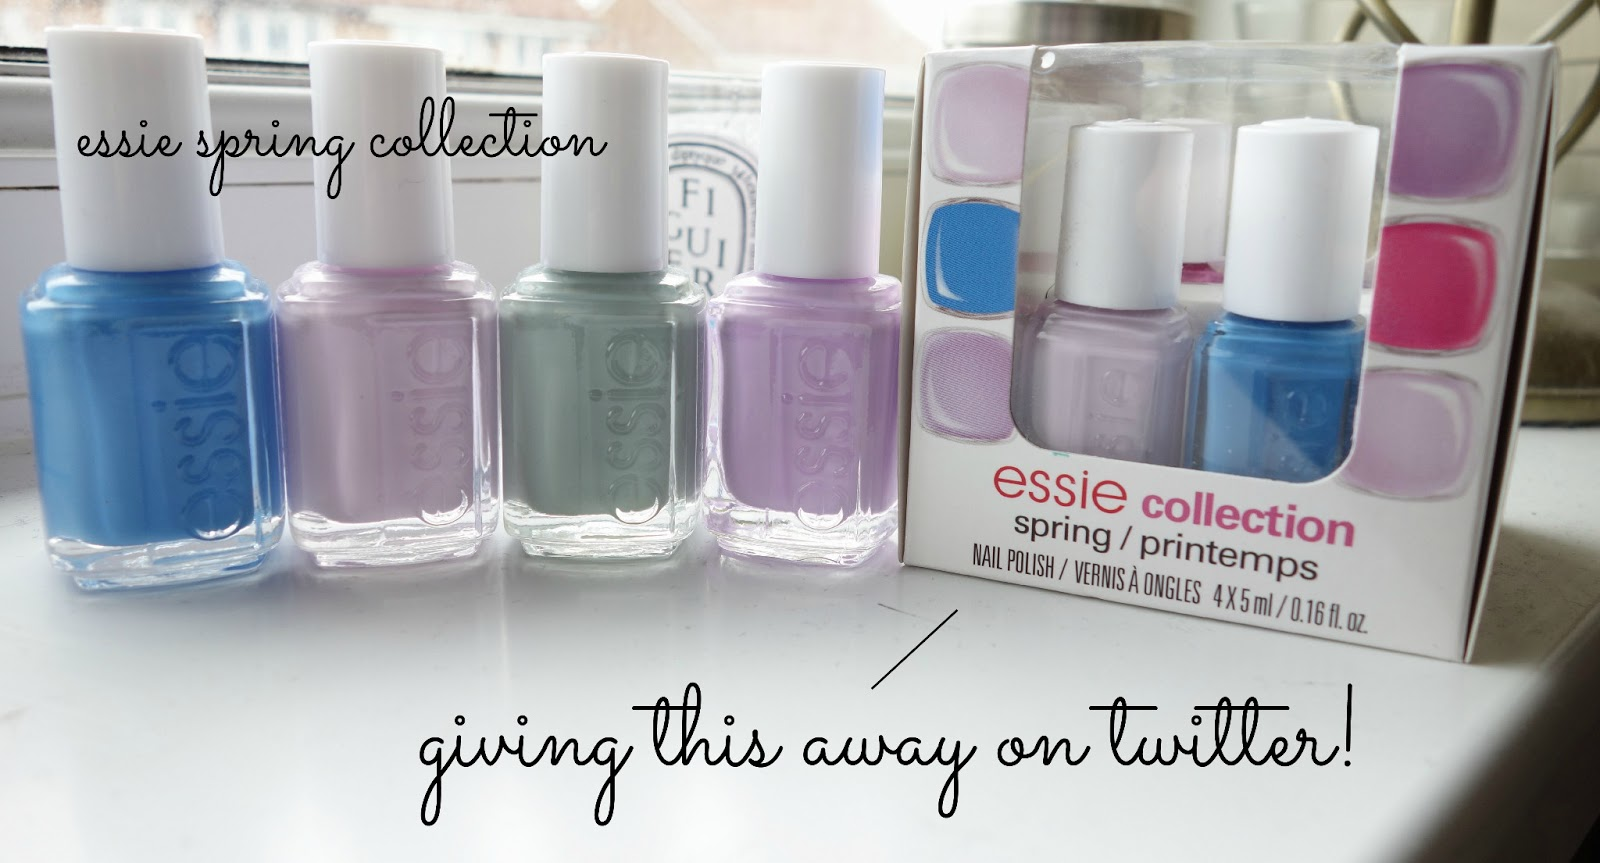 essie spring 2013 collection, essie bond with whomever, essie avenue maintain, essie go ginza, essie maximillian strausse-her